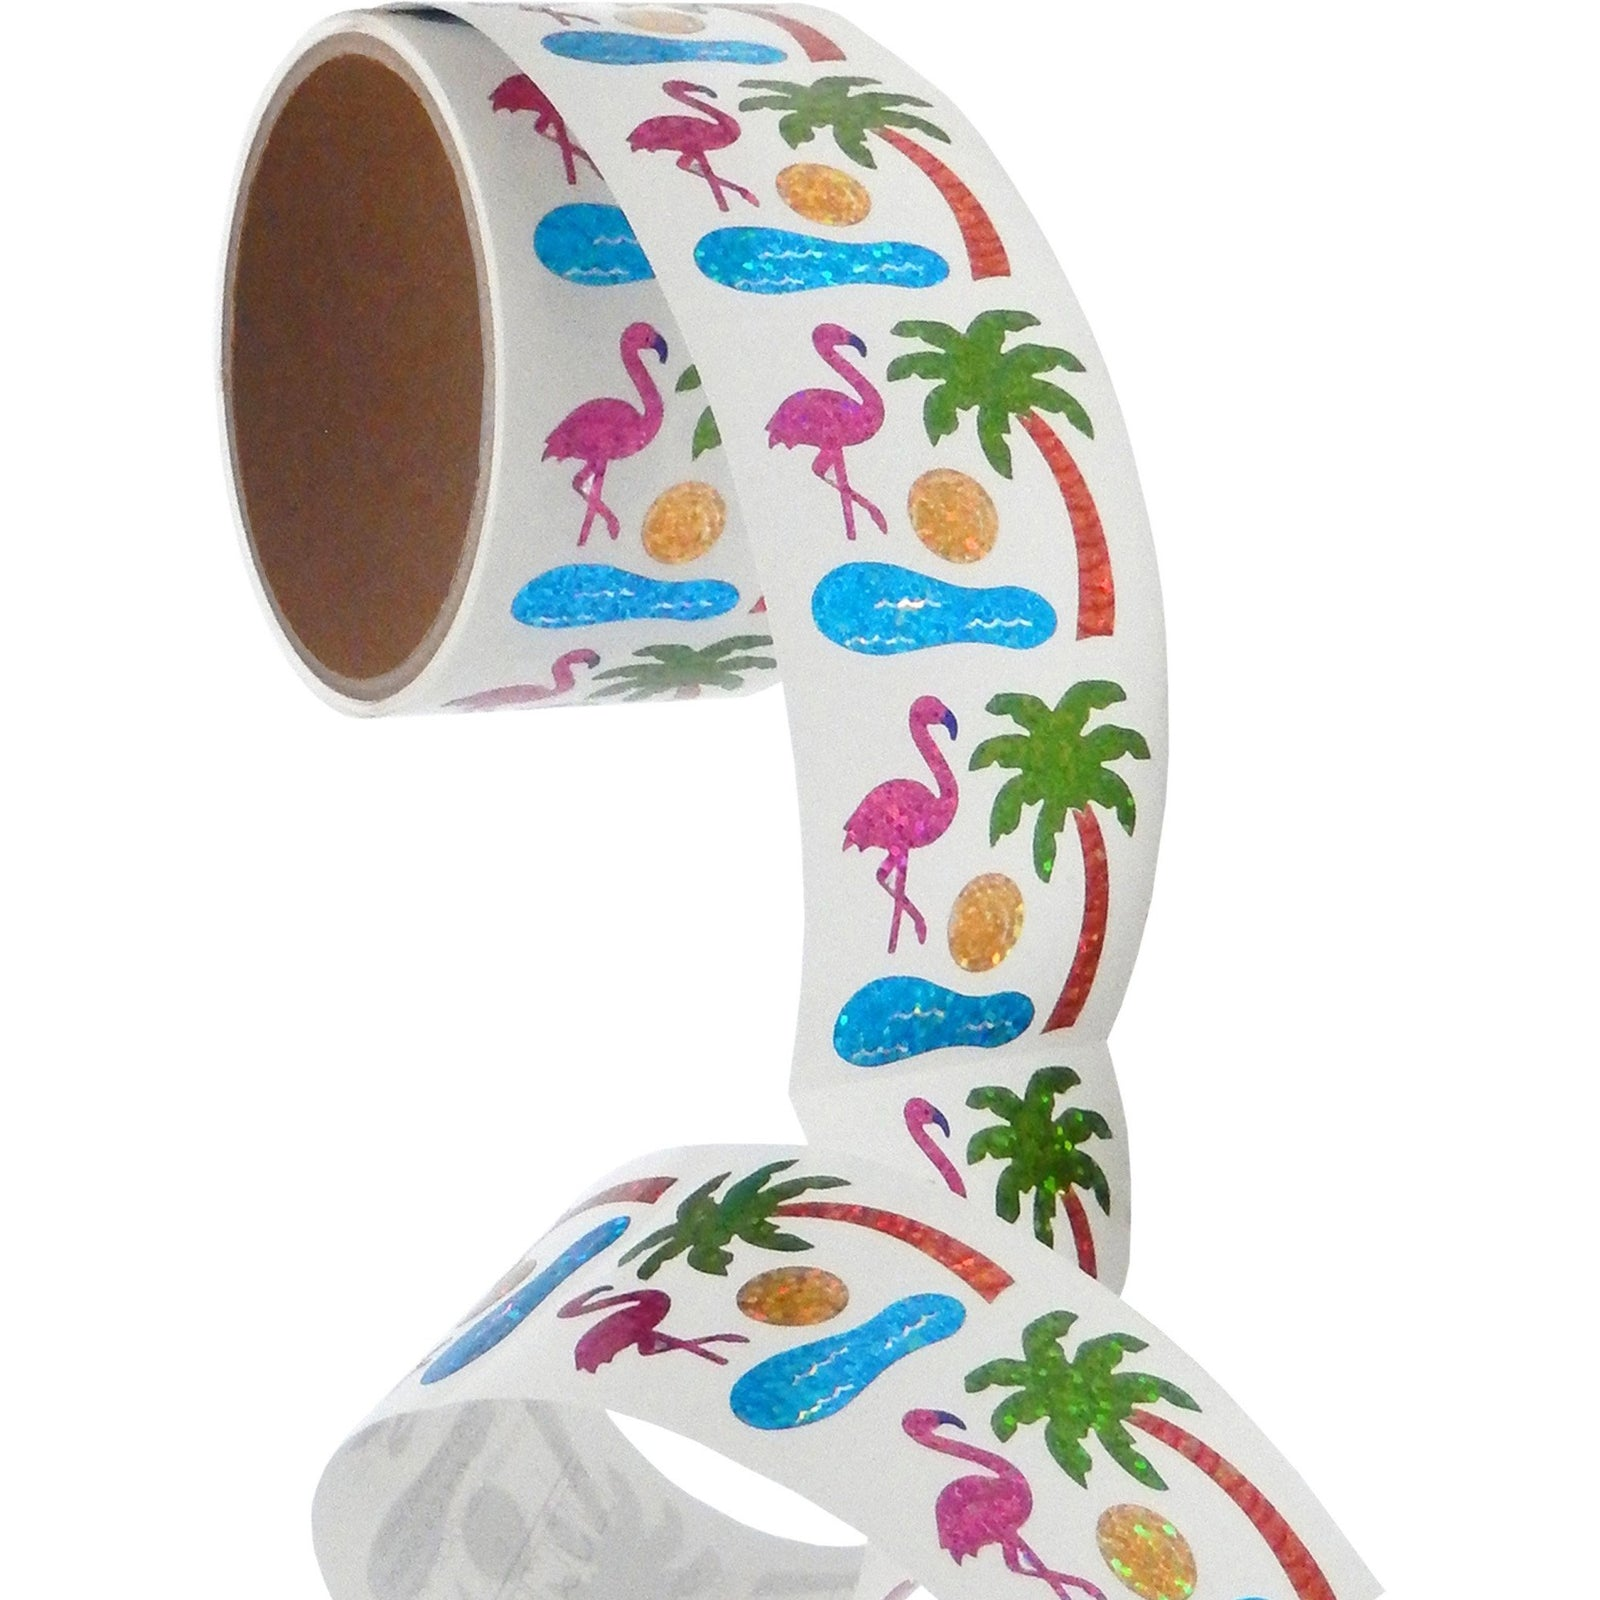 Jillson & Roberts Bulk Roll Prismatic Stickers, Mini Flamingo and Palm Tree (100 Repeats) - Present Paper